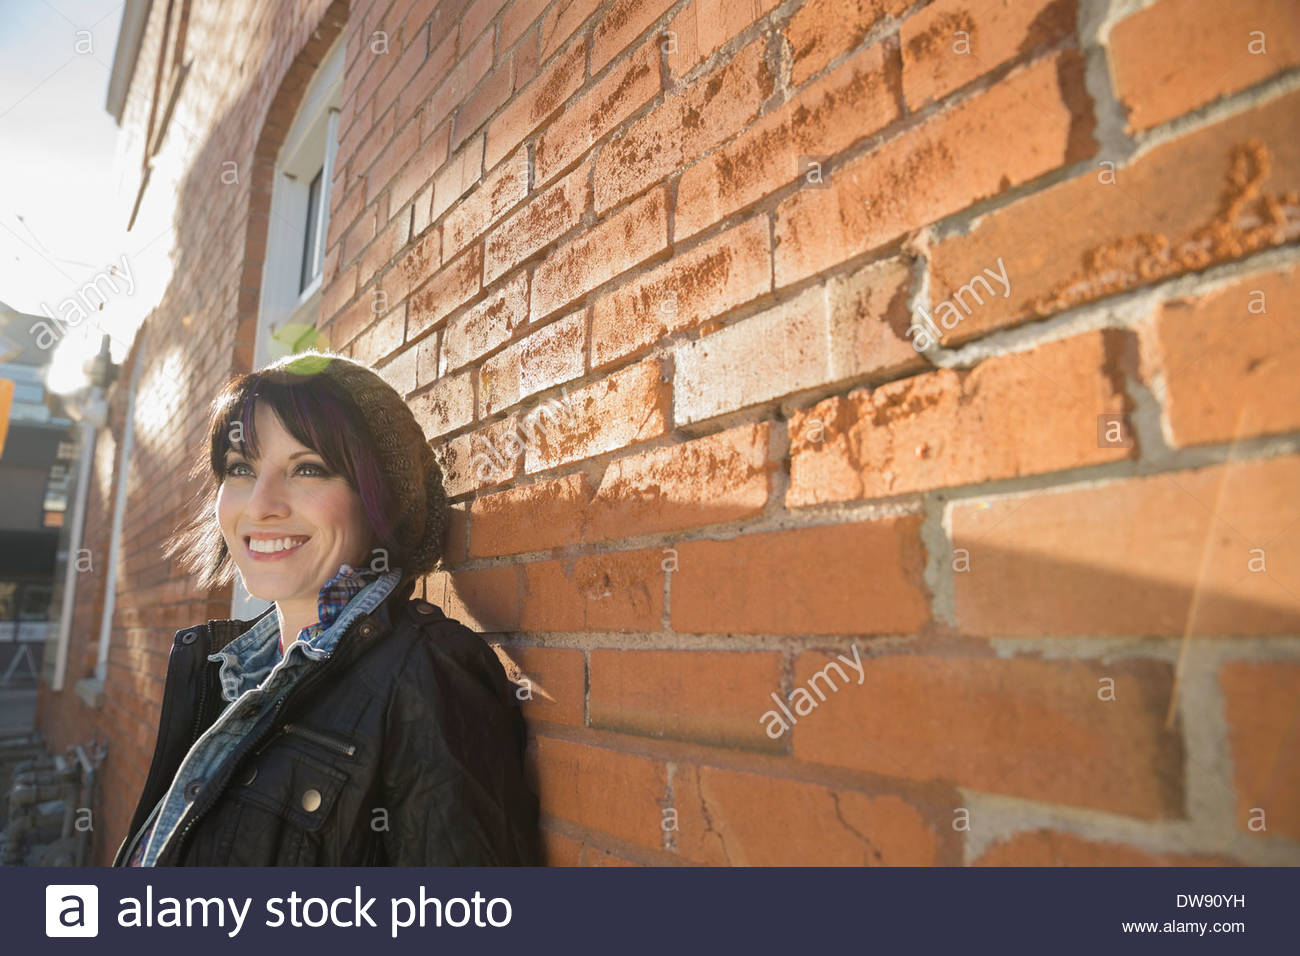 Smiling woman leaning against brick wall Photo Stock